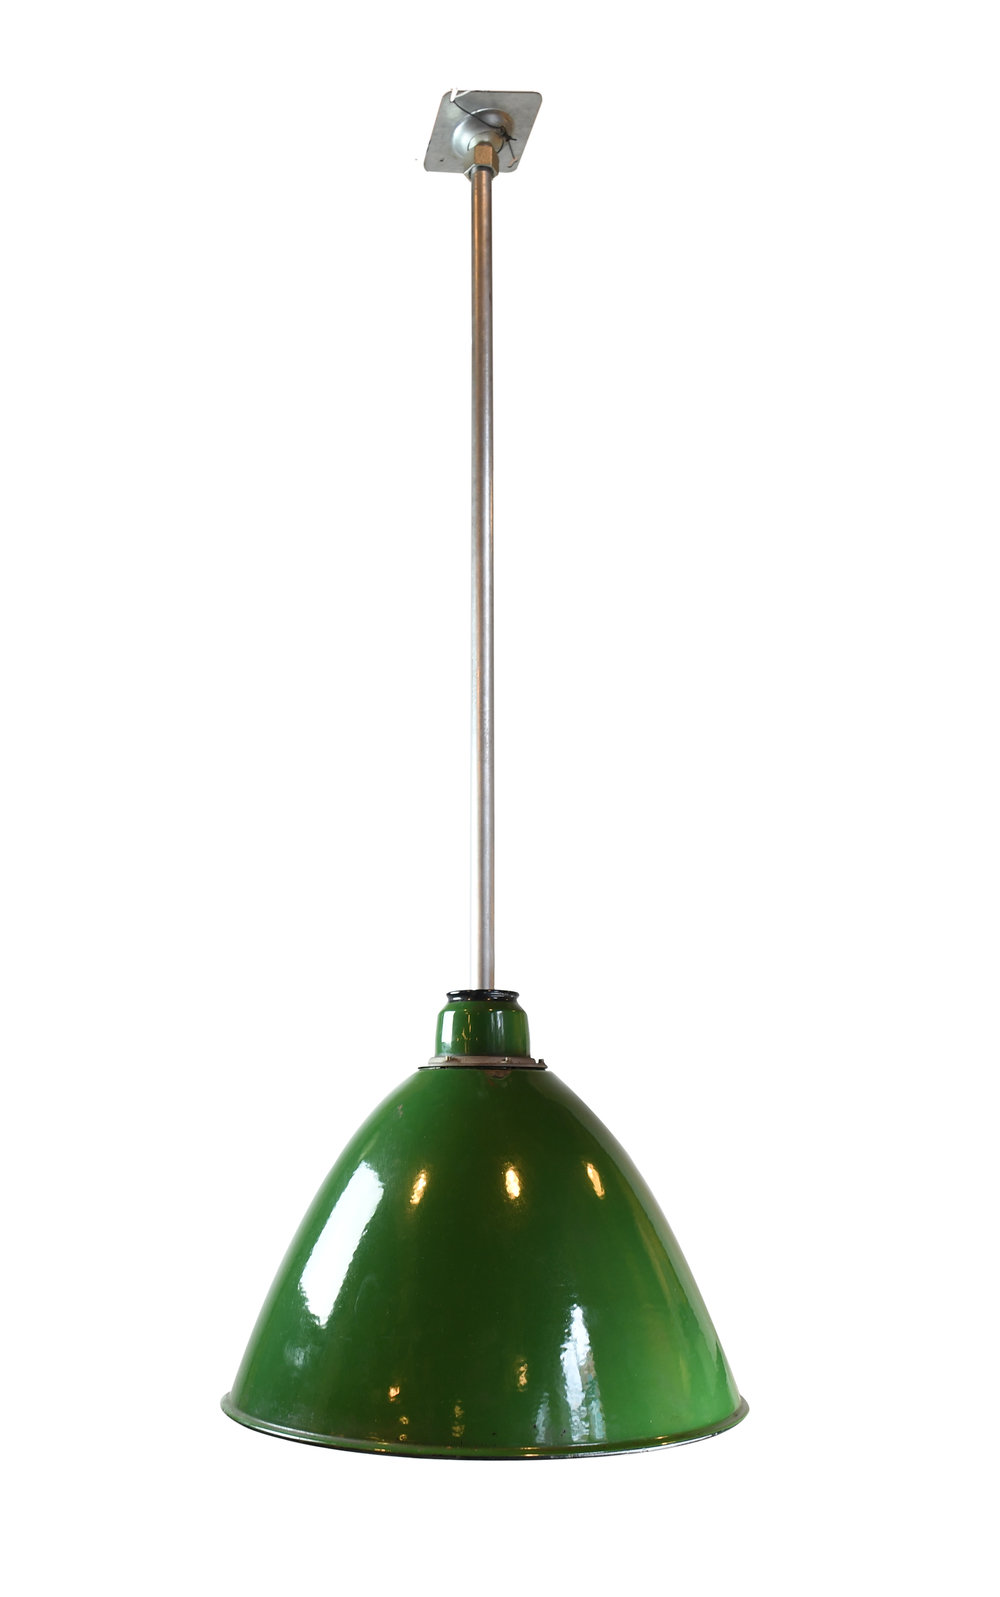 green enamel warehouse light